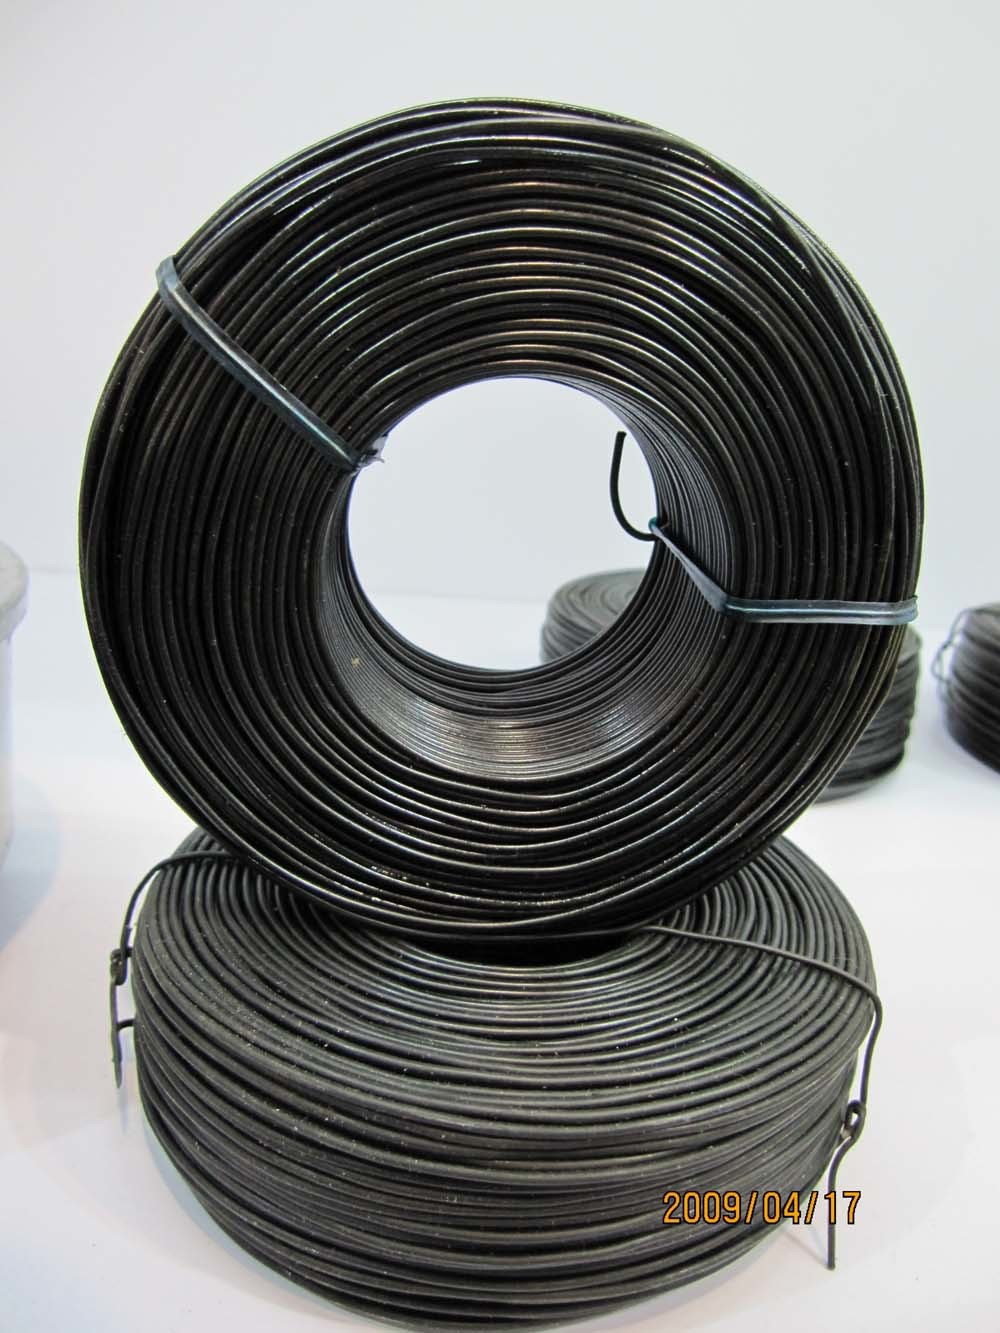 Black Wire Ties : China black annealed tie wire photos pictures made in